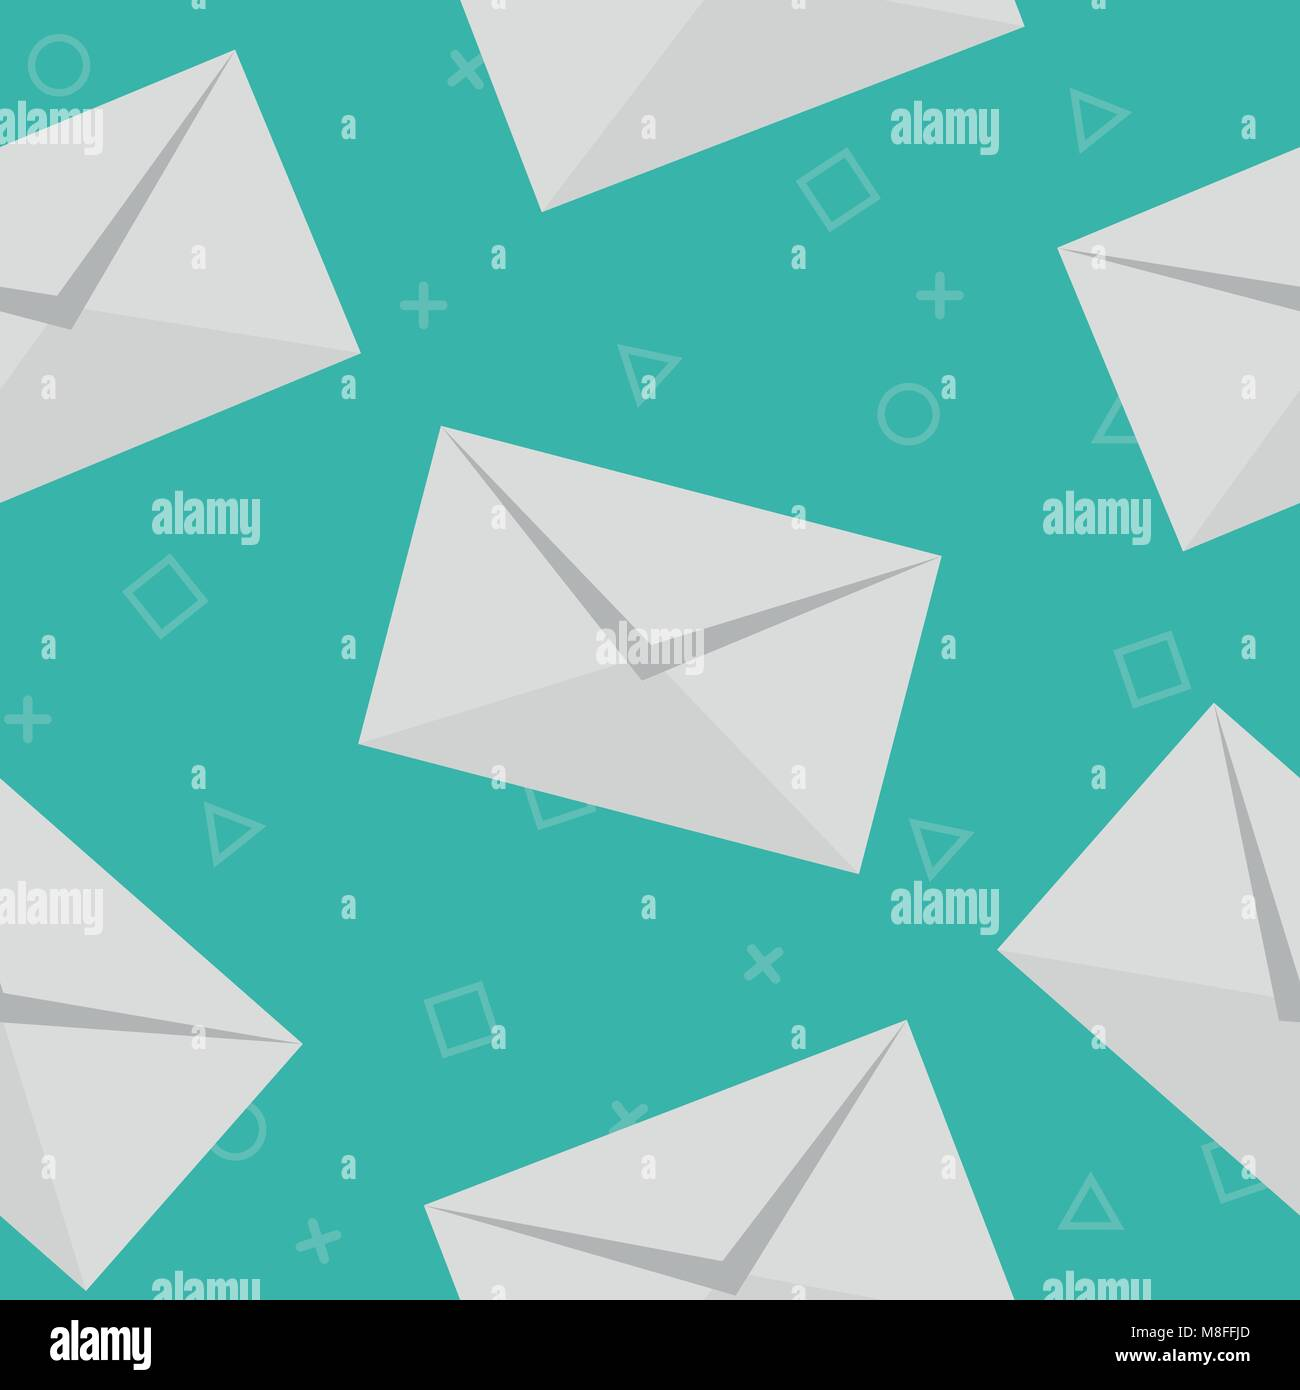 Mail pattern seamless blue. vector pattern seamless geometric repeat background - Stock Image